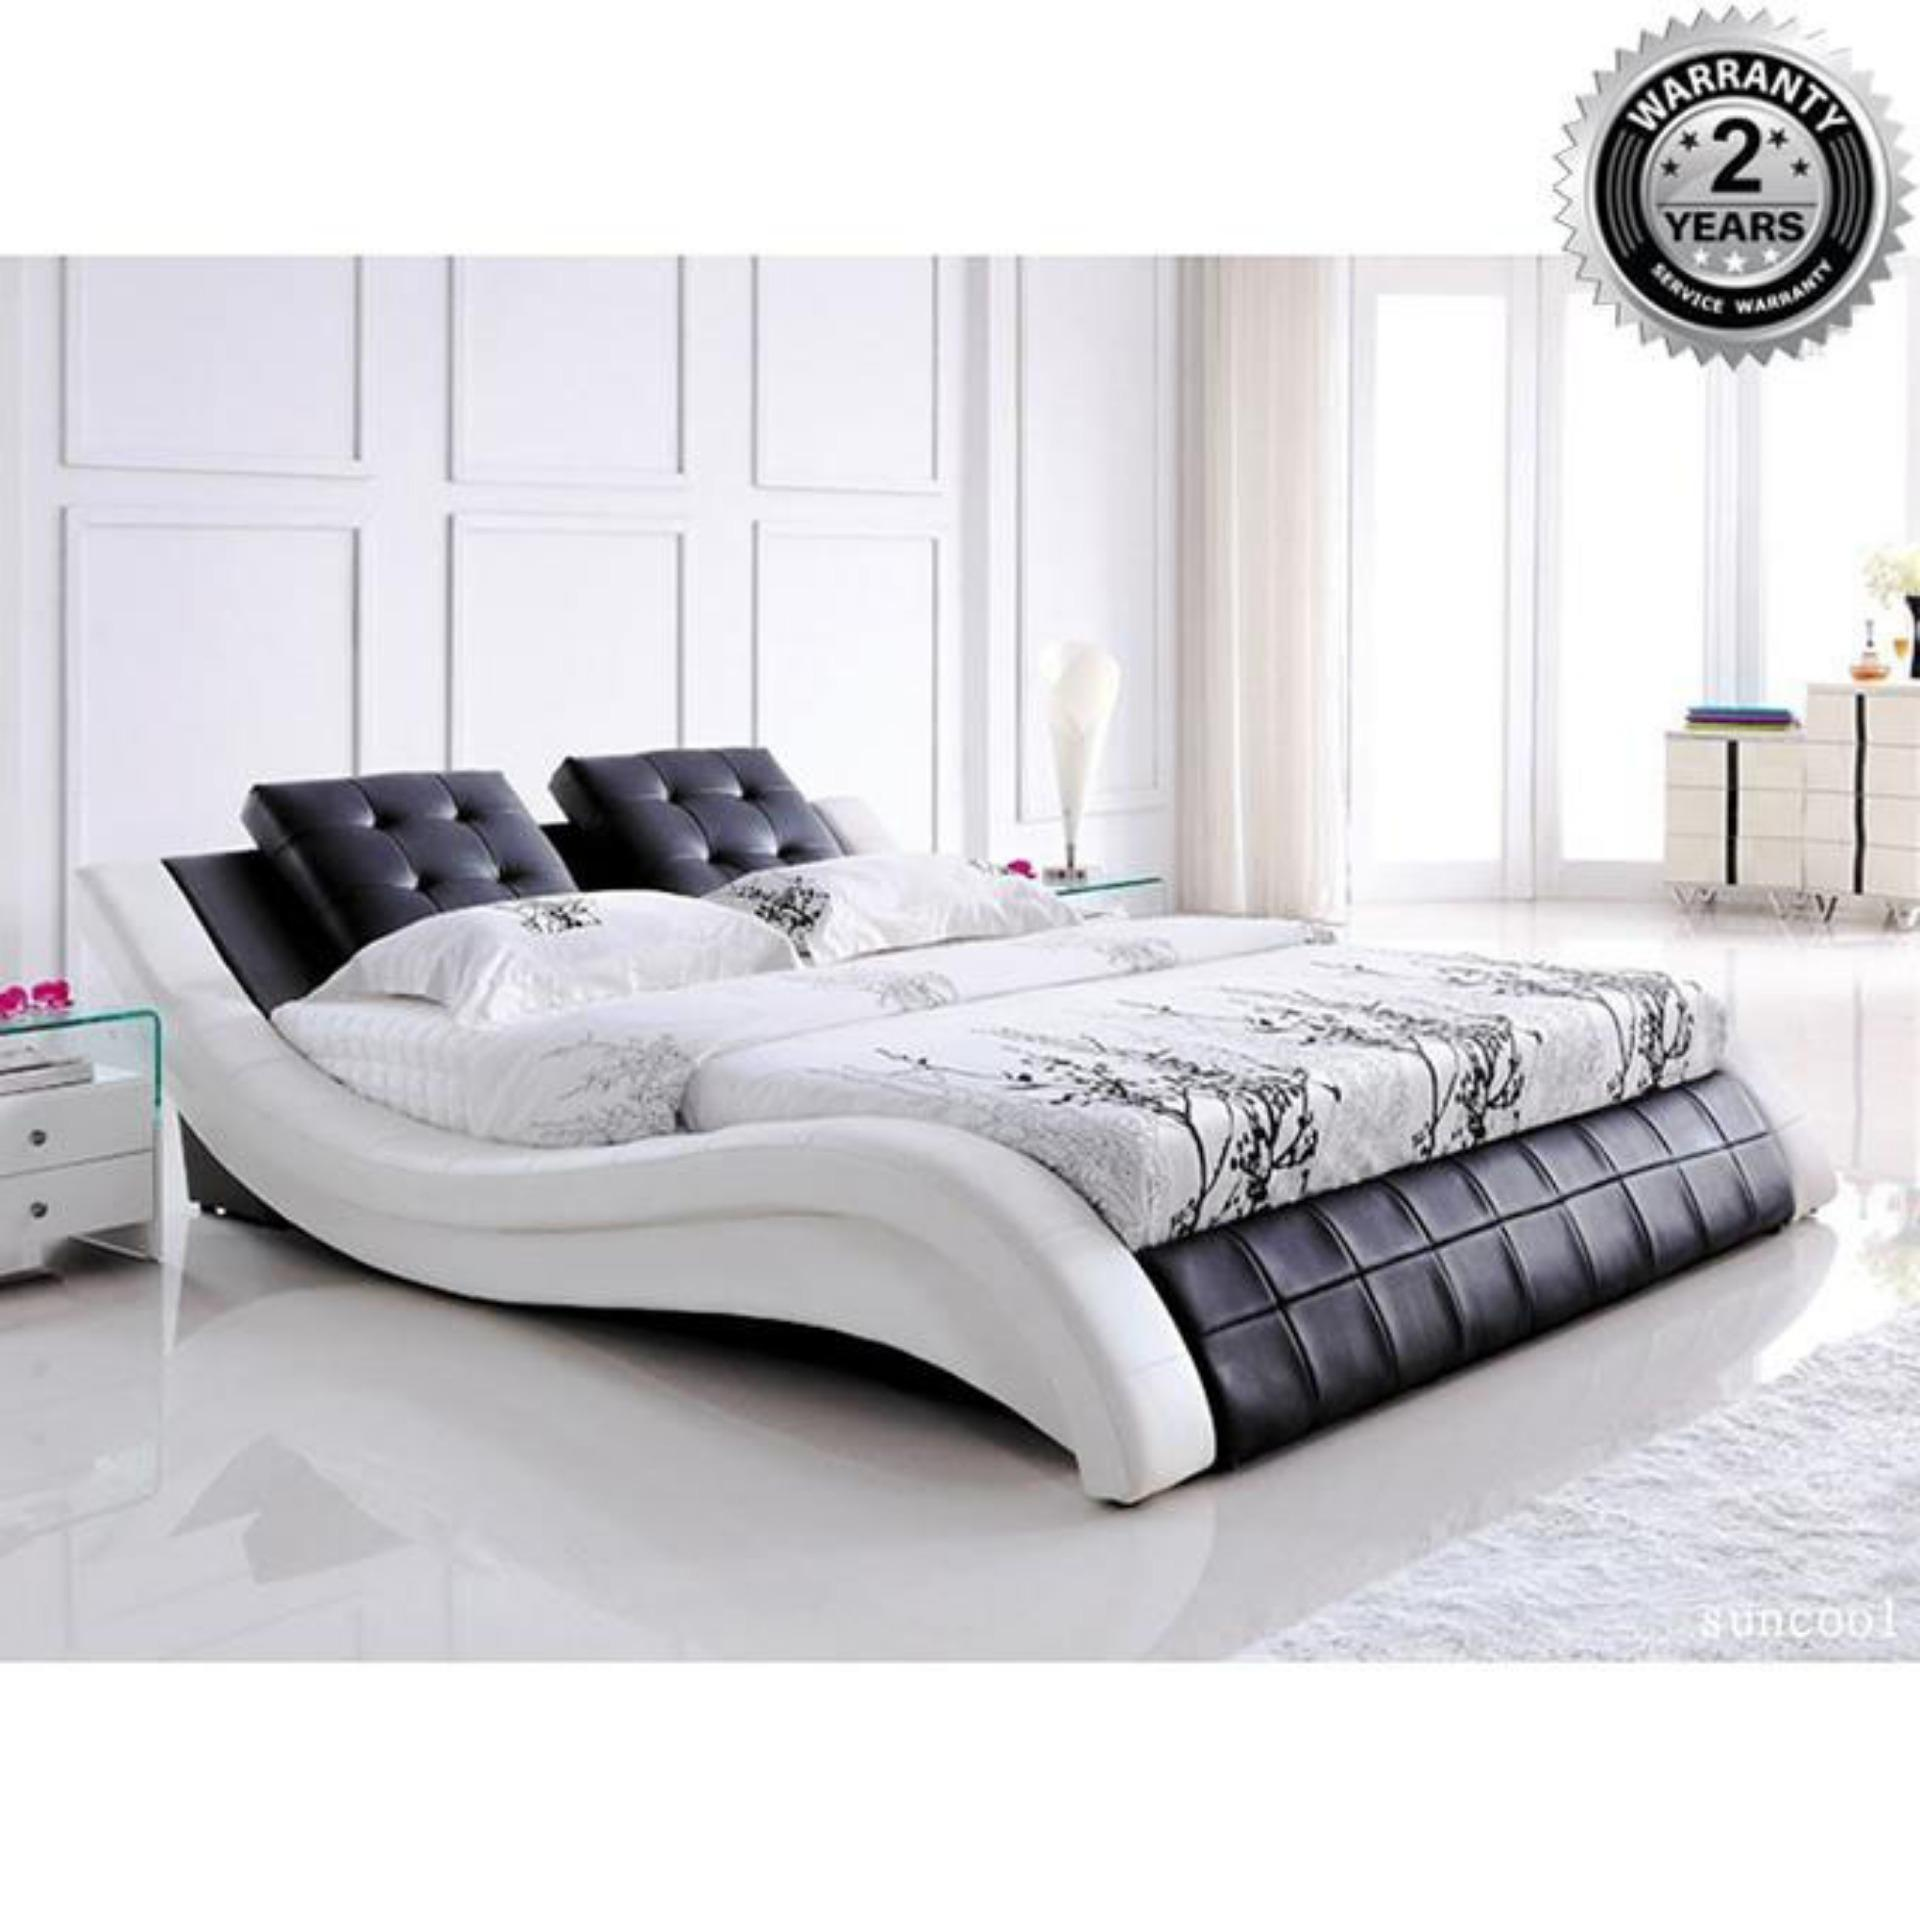 Bed Price In Bangladesh - Buy Beds In Bangladesh - Daraz.com.bd